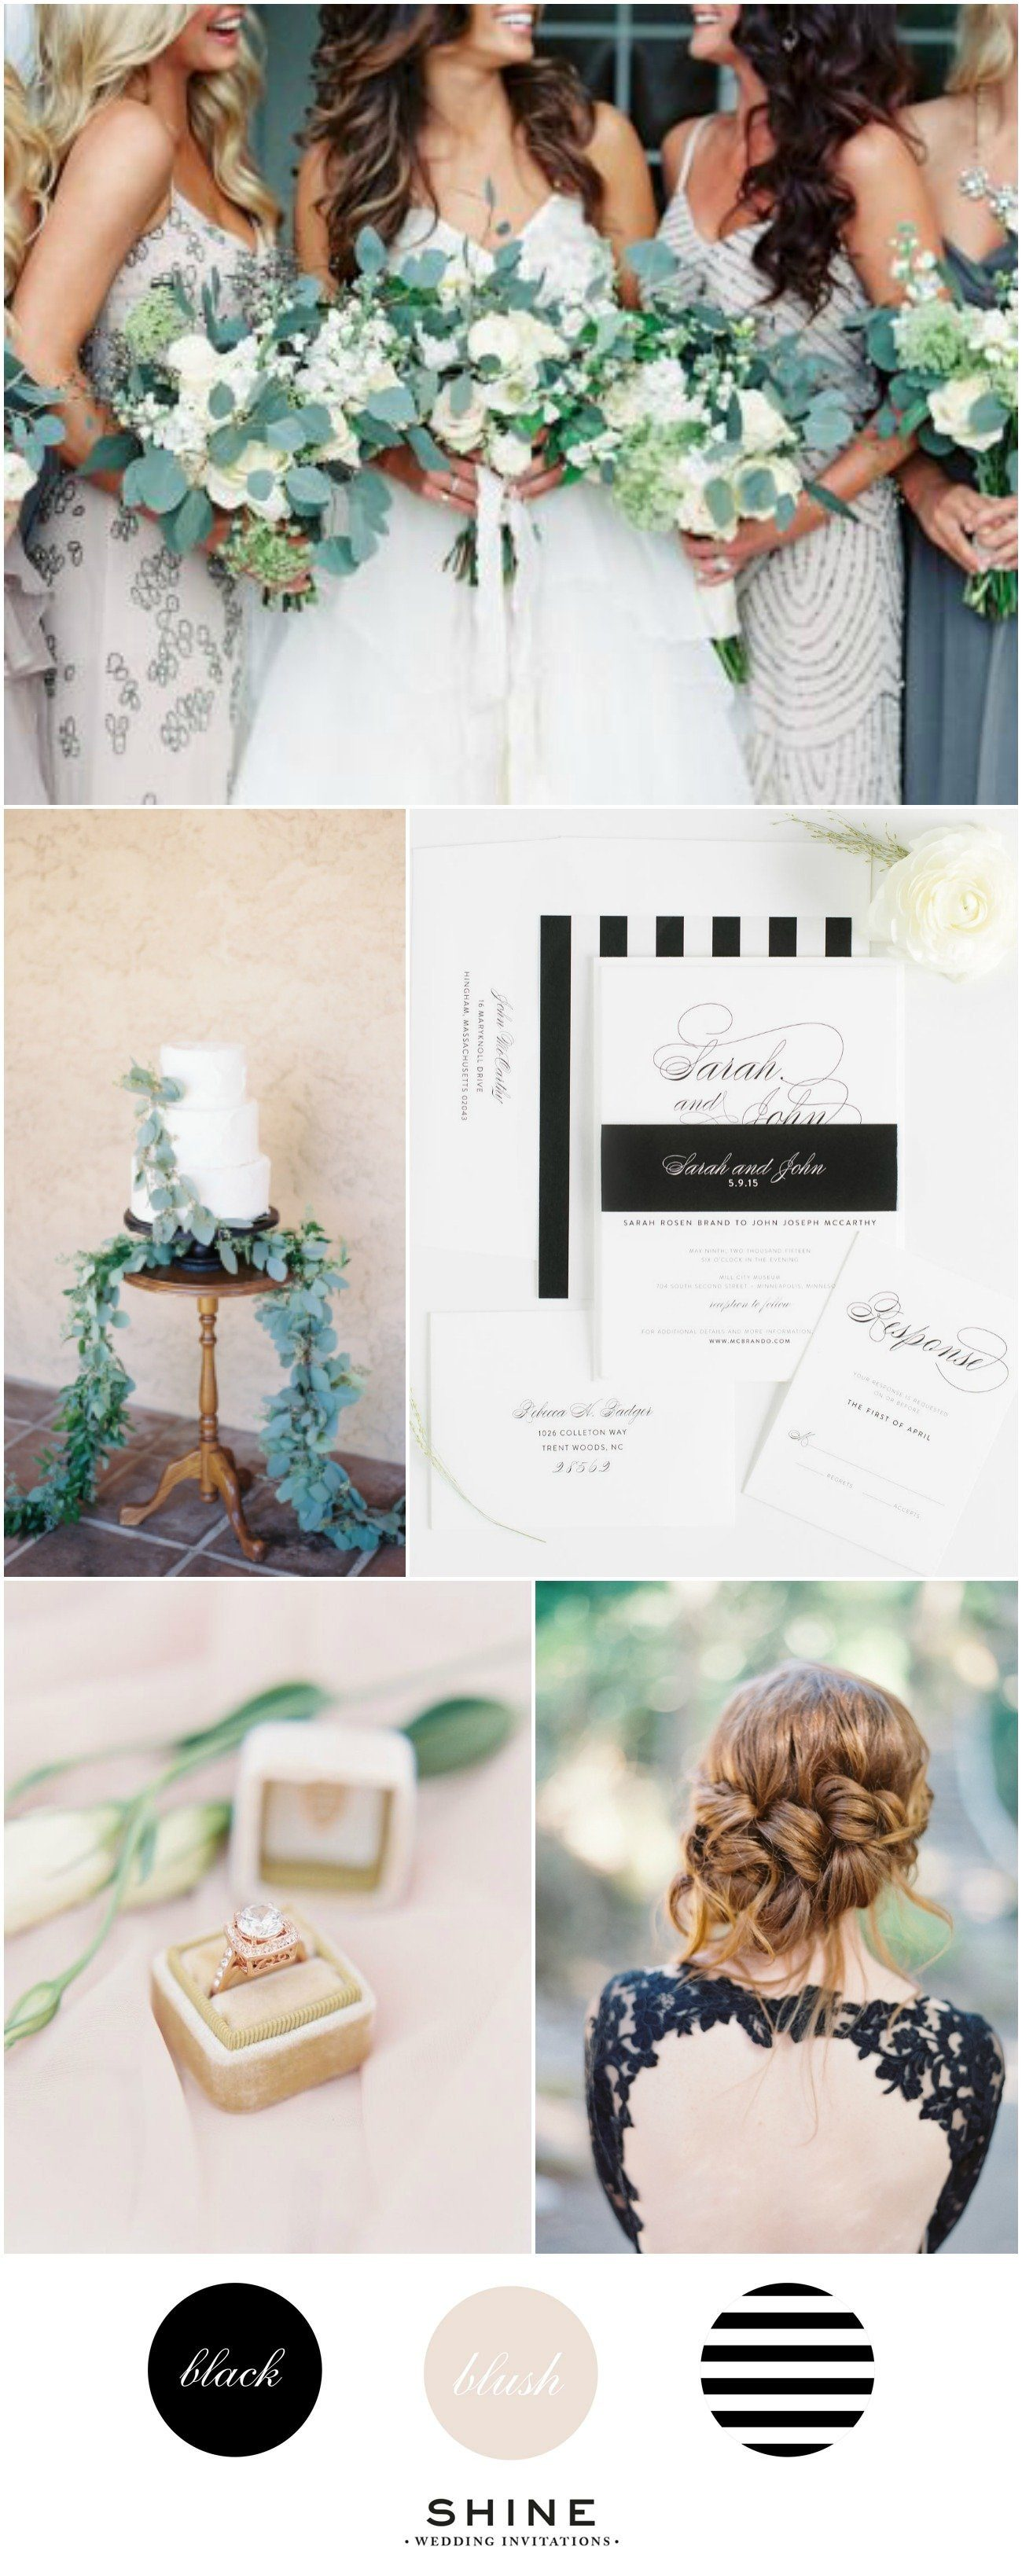 Blush, Black, and White Striped Wedding Inspiration